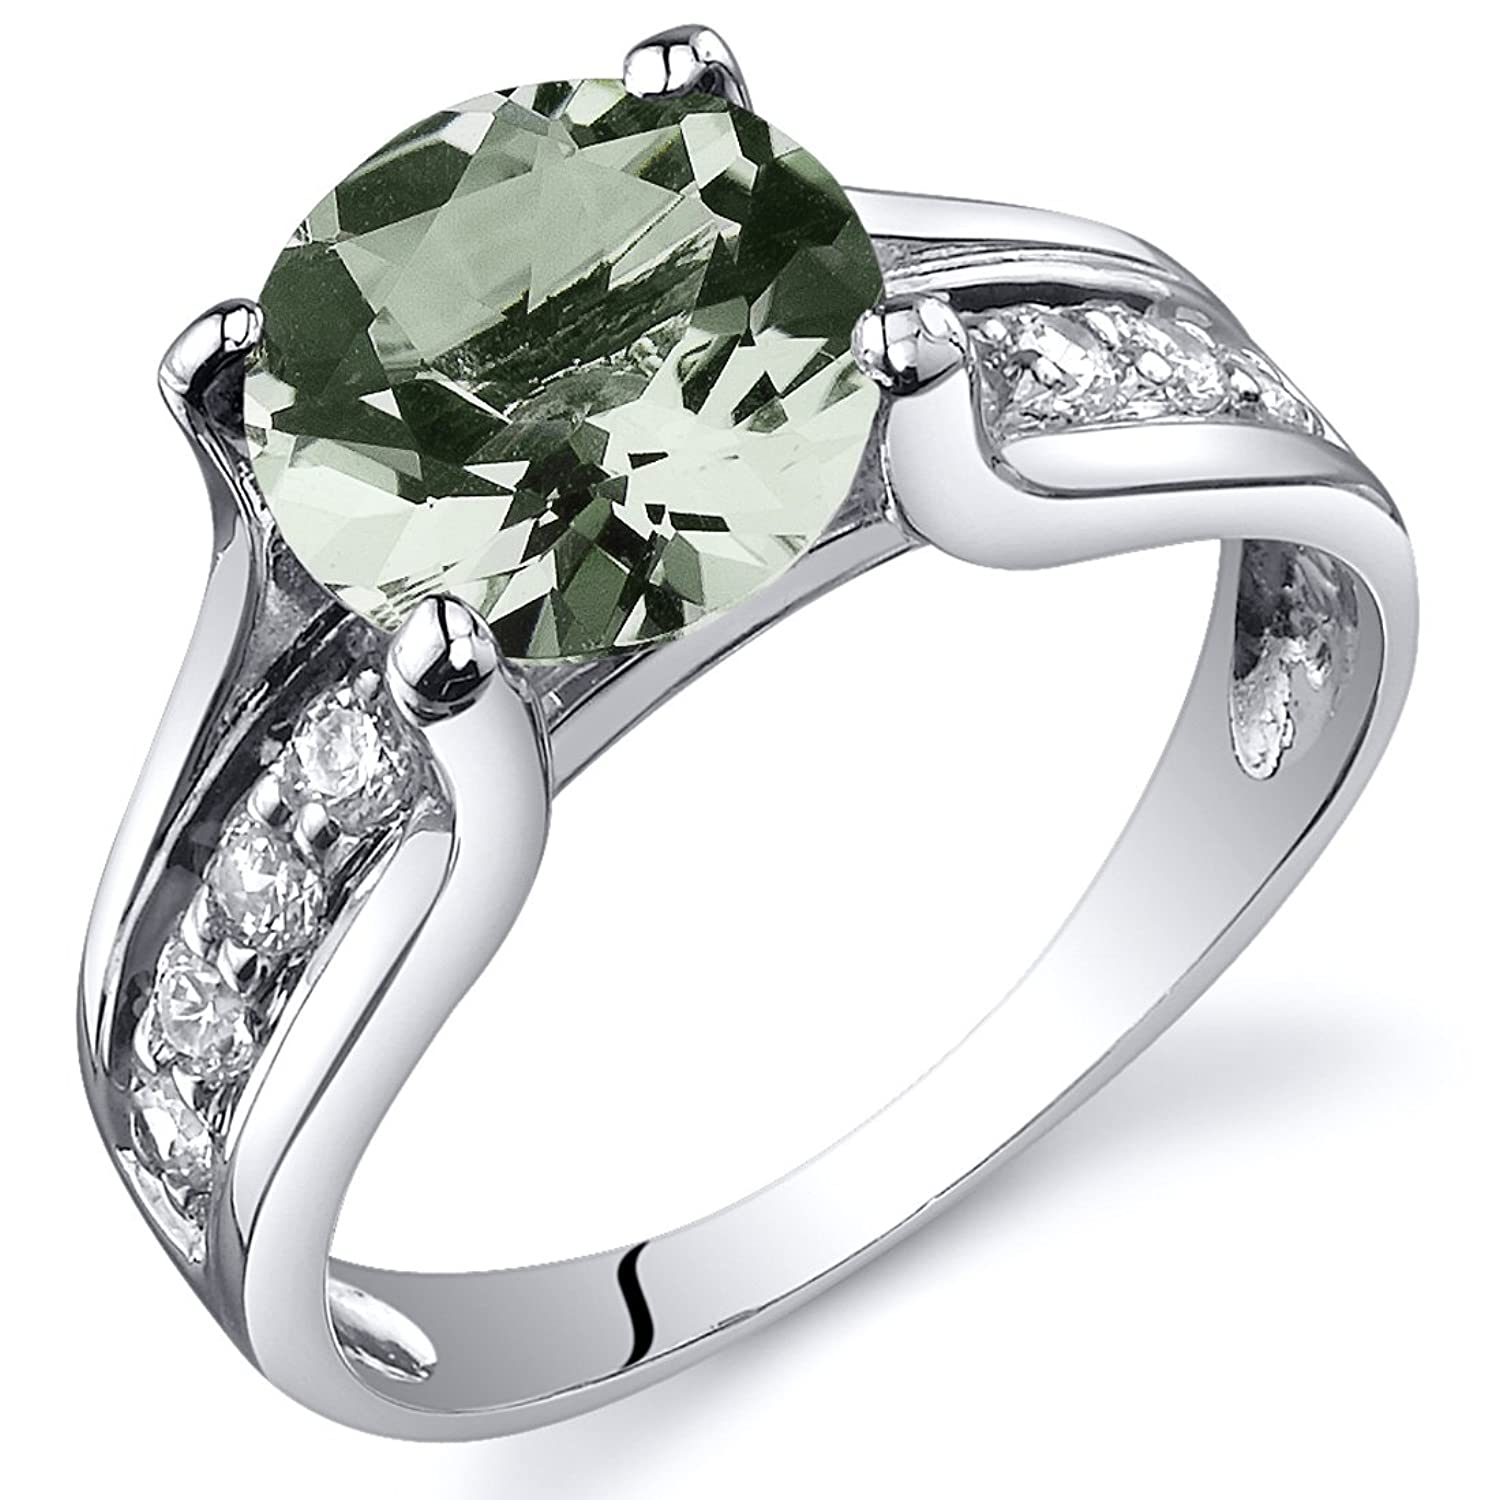 custom at vivana designs claudia rings endler silver ring green look viviana amethyst